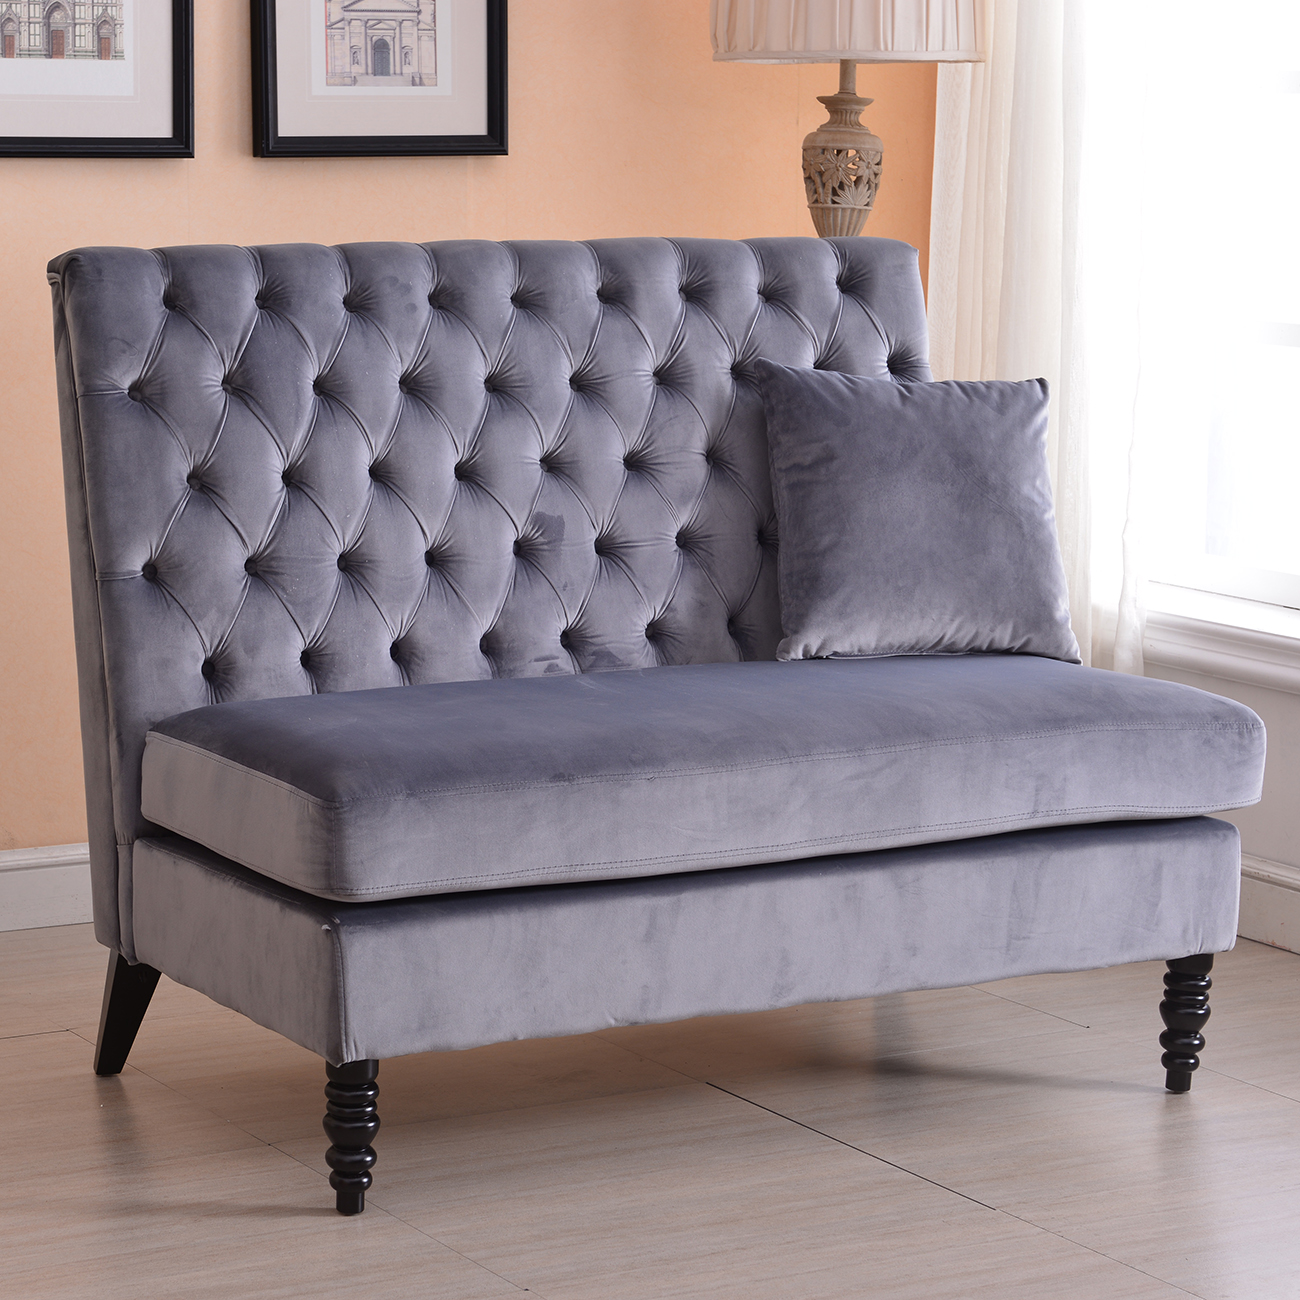 Velvet modern tufted settee bench bedroom sofa high back love seat beige gray ebay Bench sofa